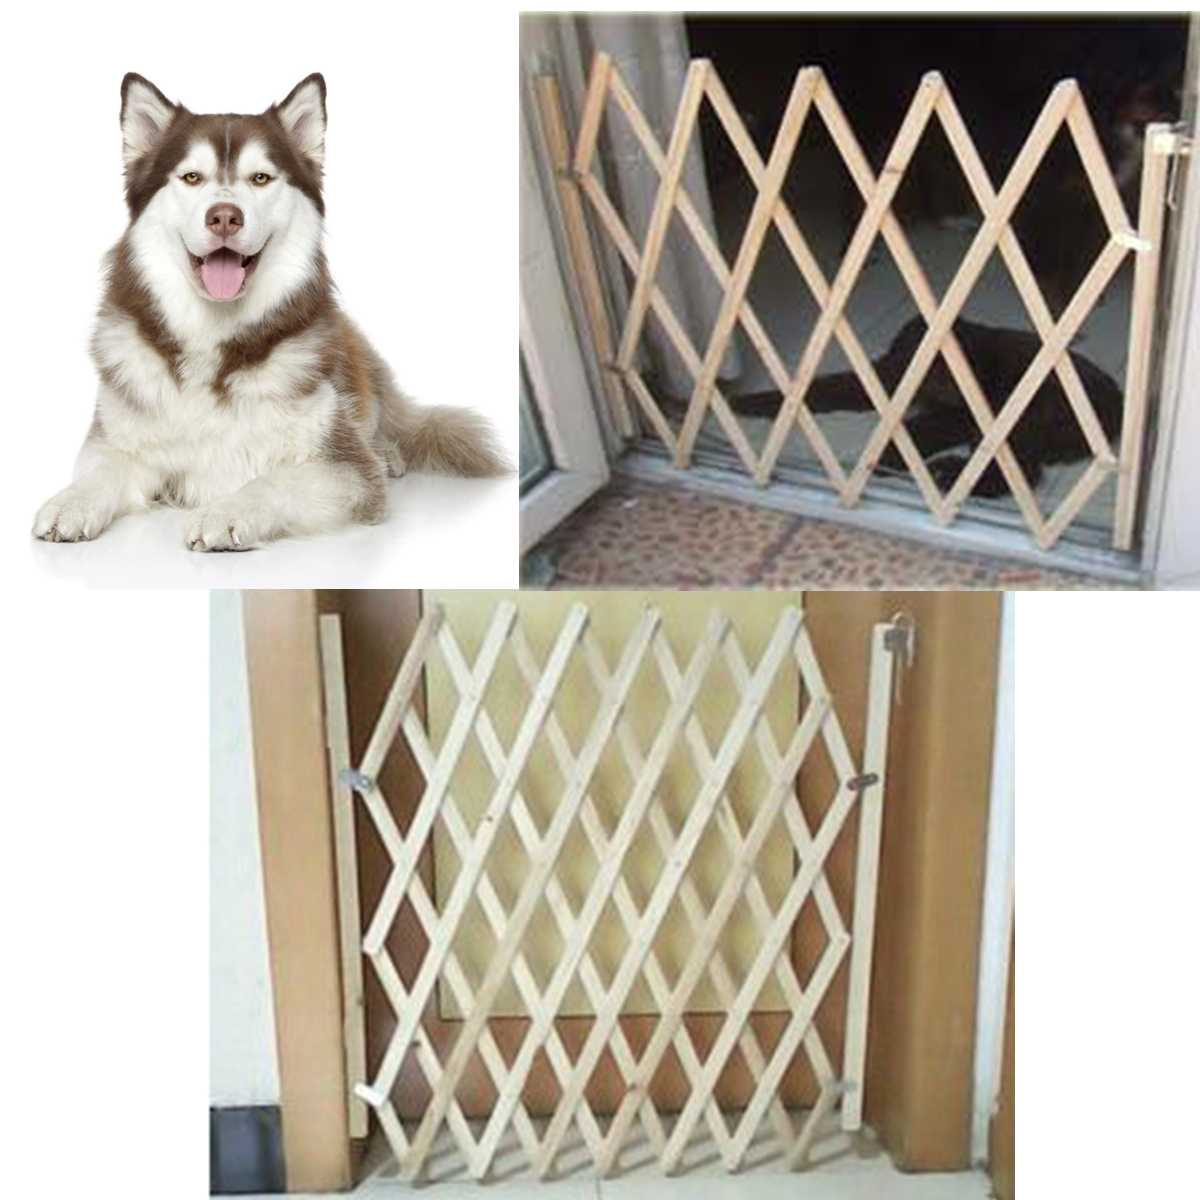 Stretchable Dog Gate and Wooden Pet Fence Gate for Protection of Pets from Harmful Places at Home